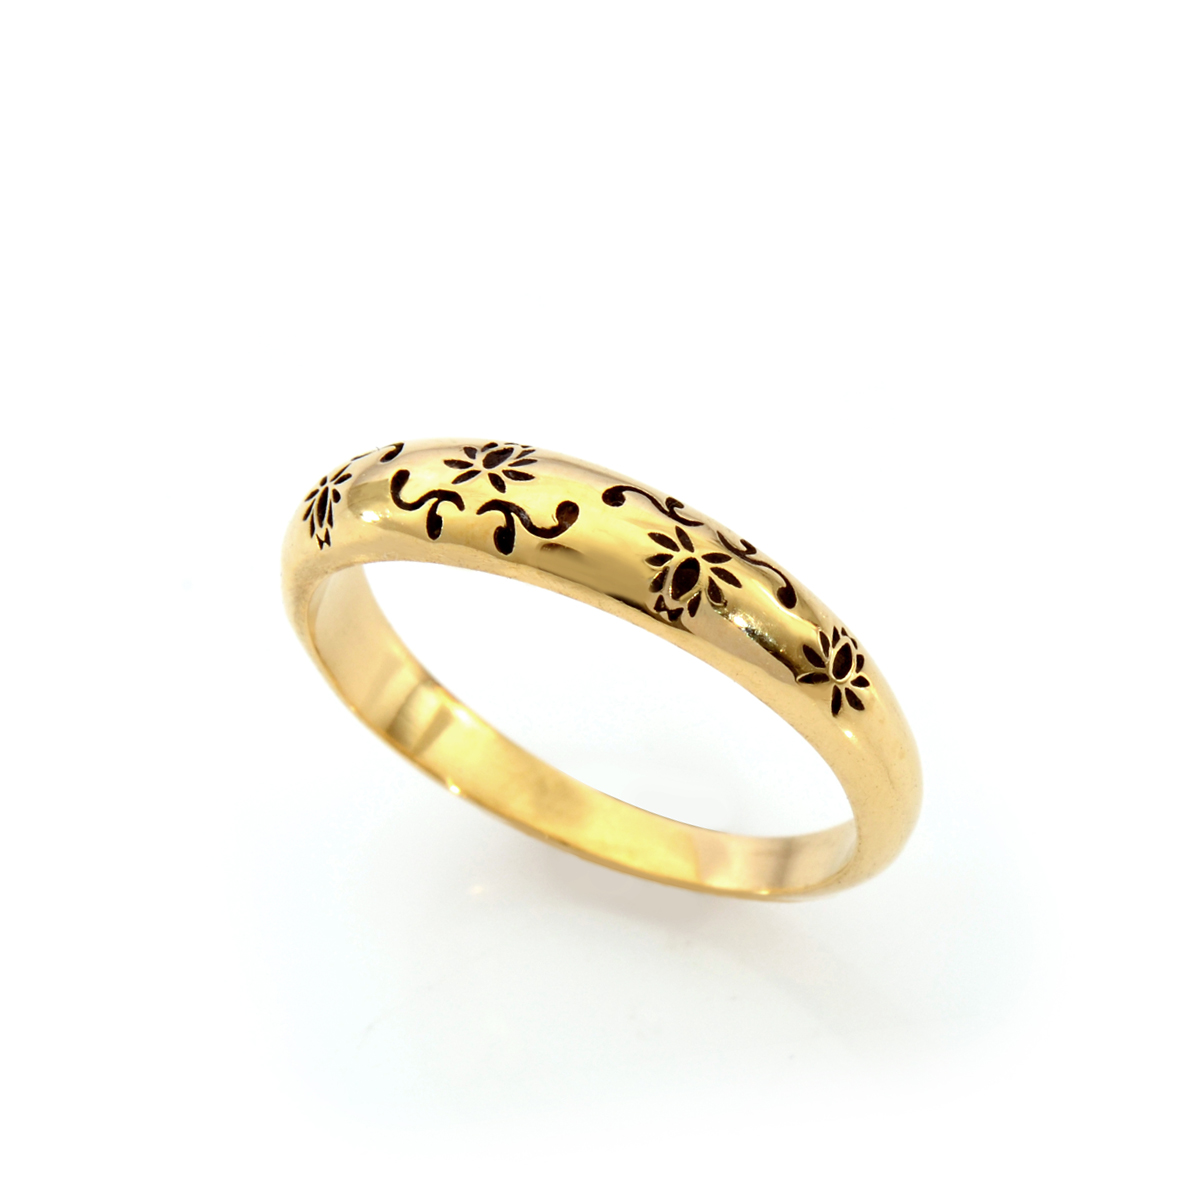 Floral design engraved gold ring